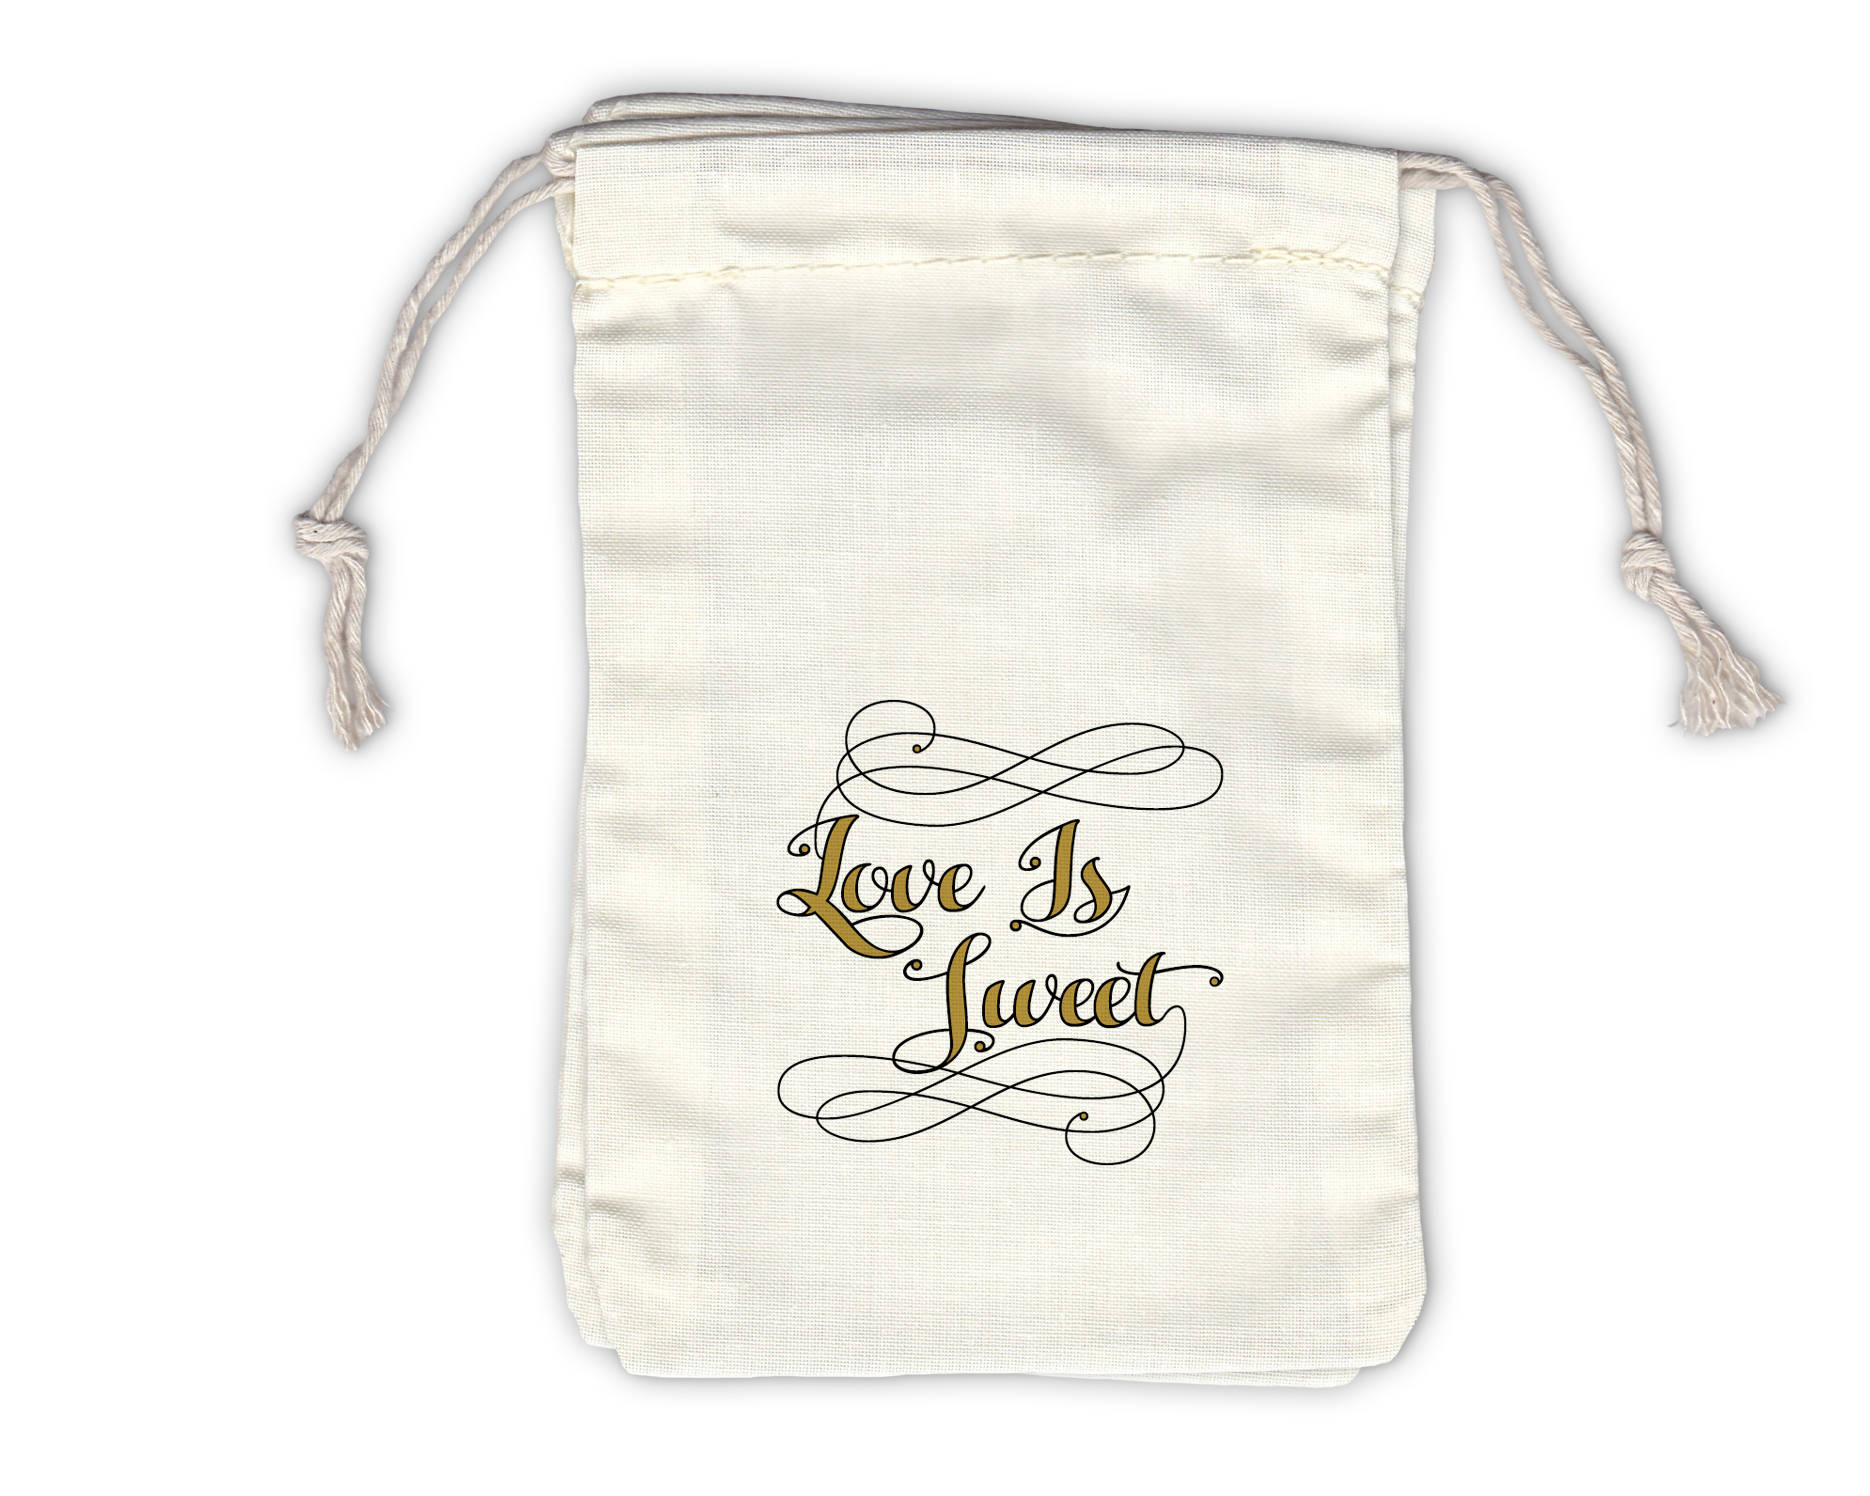 Love Is Sweet Calligraphy Cotton Bags for Wedding Favors in Black ...